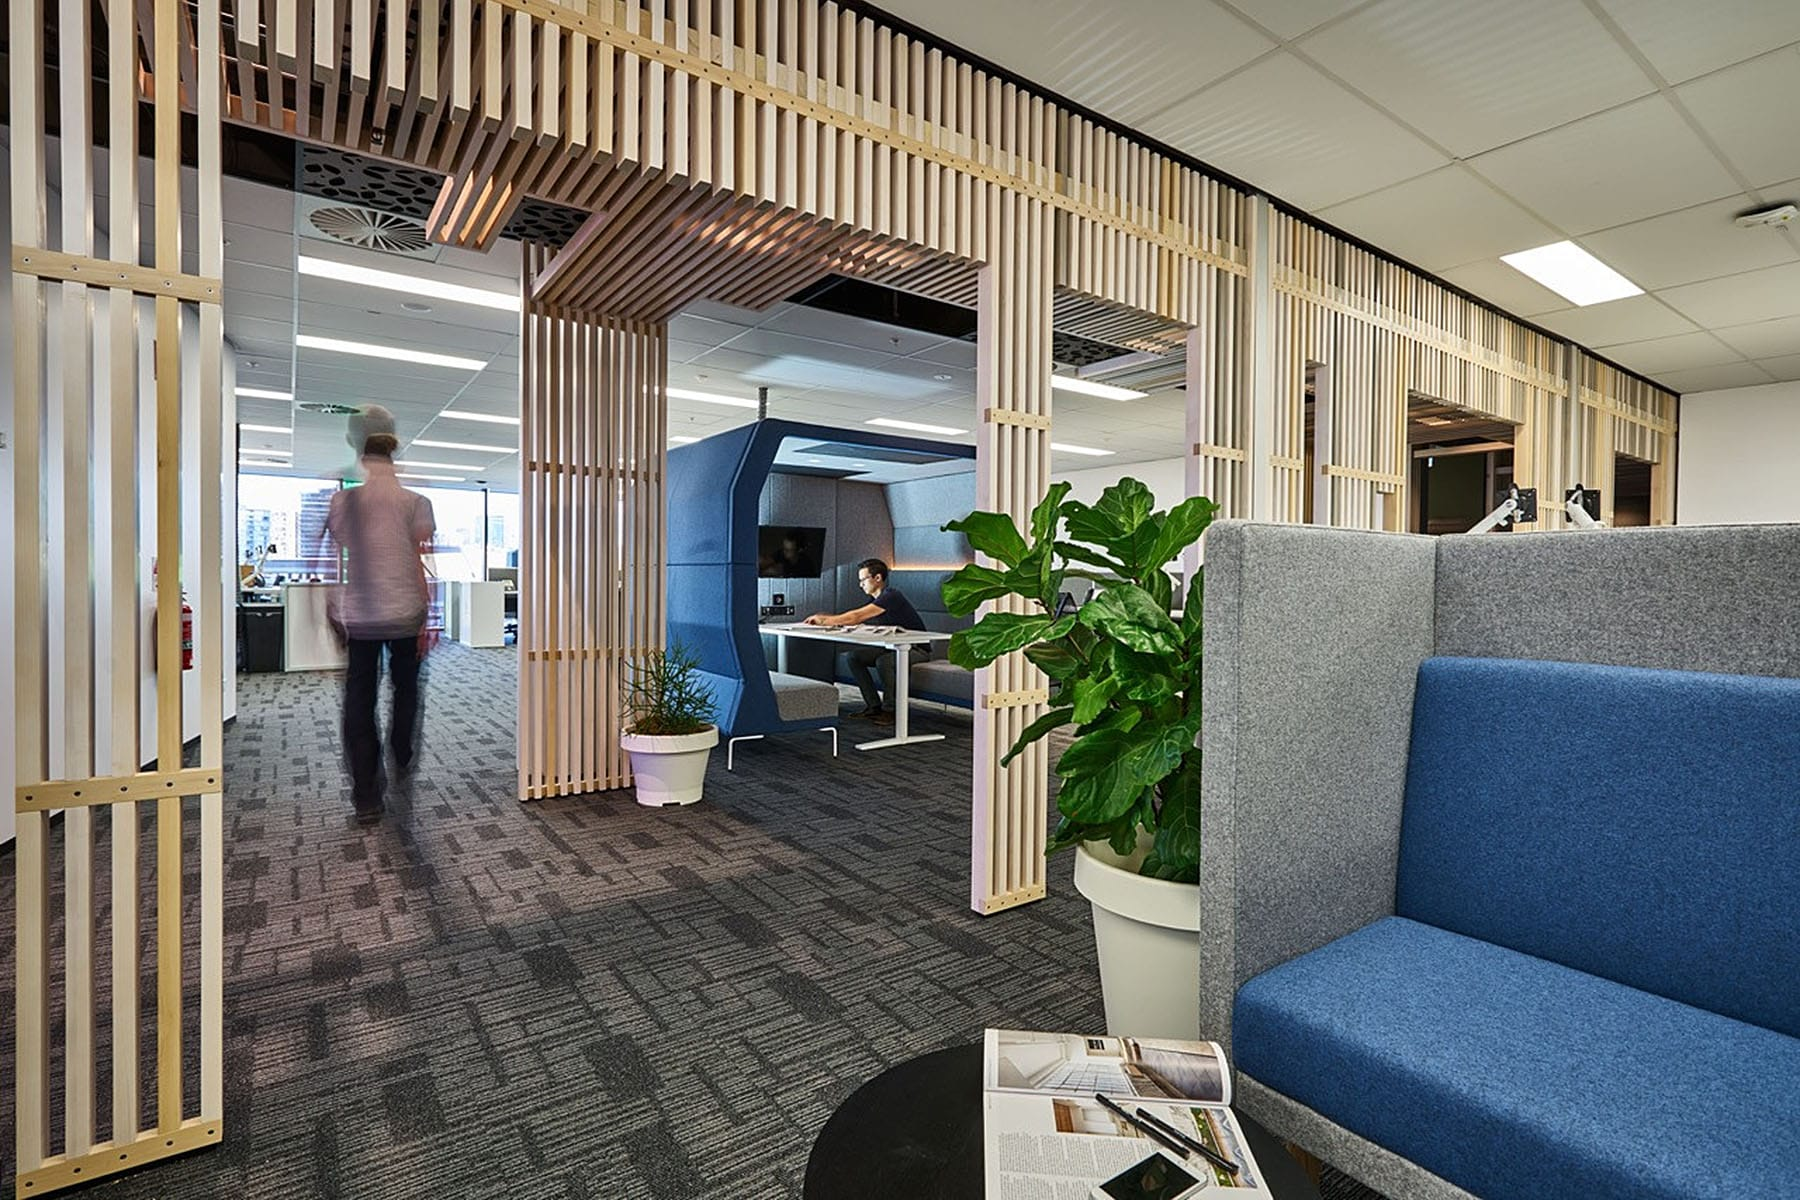 Create It Constructions - Commercial Office Fitout. Specialist Design Construction Company Brisbane. Shared Office Fitout. Coworking Space Fitout. Meeting Room. Office Desk. Desk Partition. Break-out areas. Lounge area.